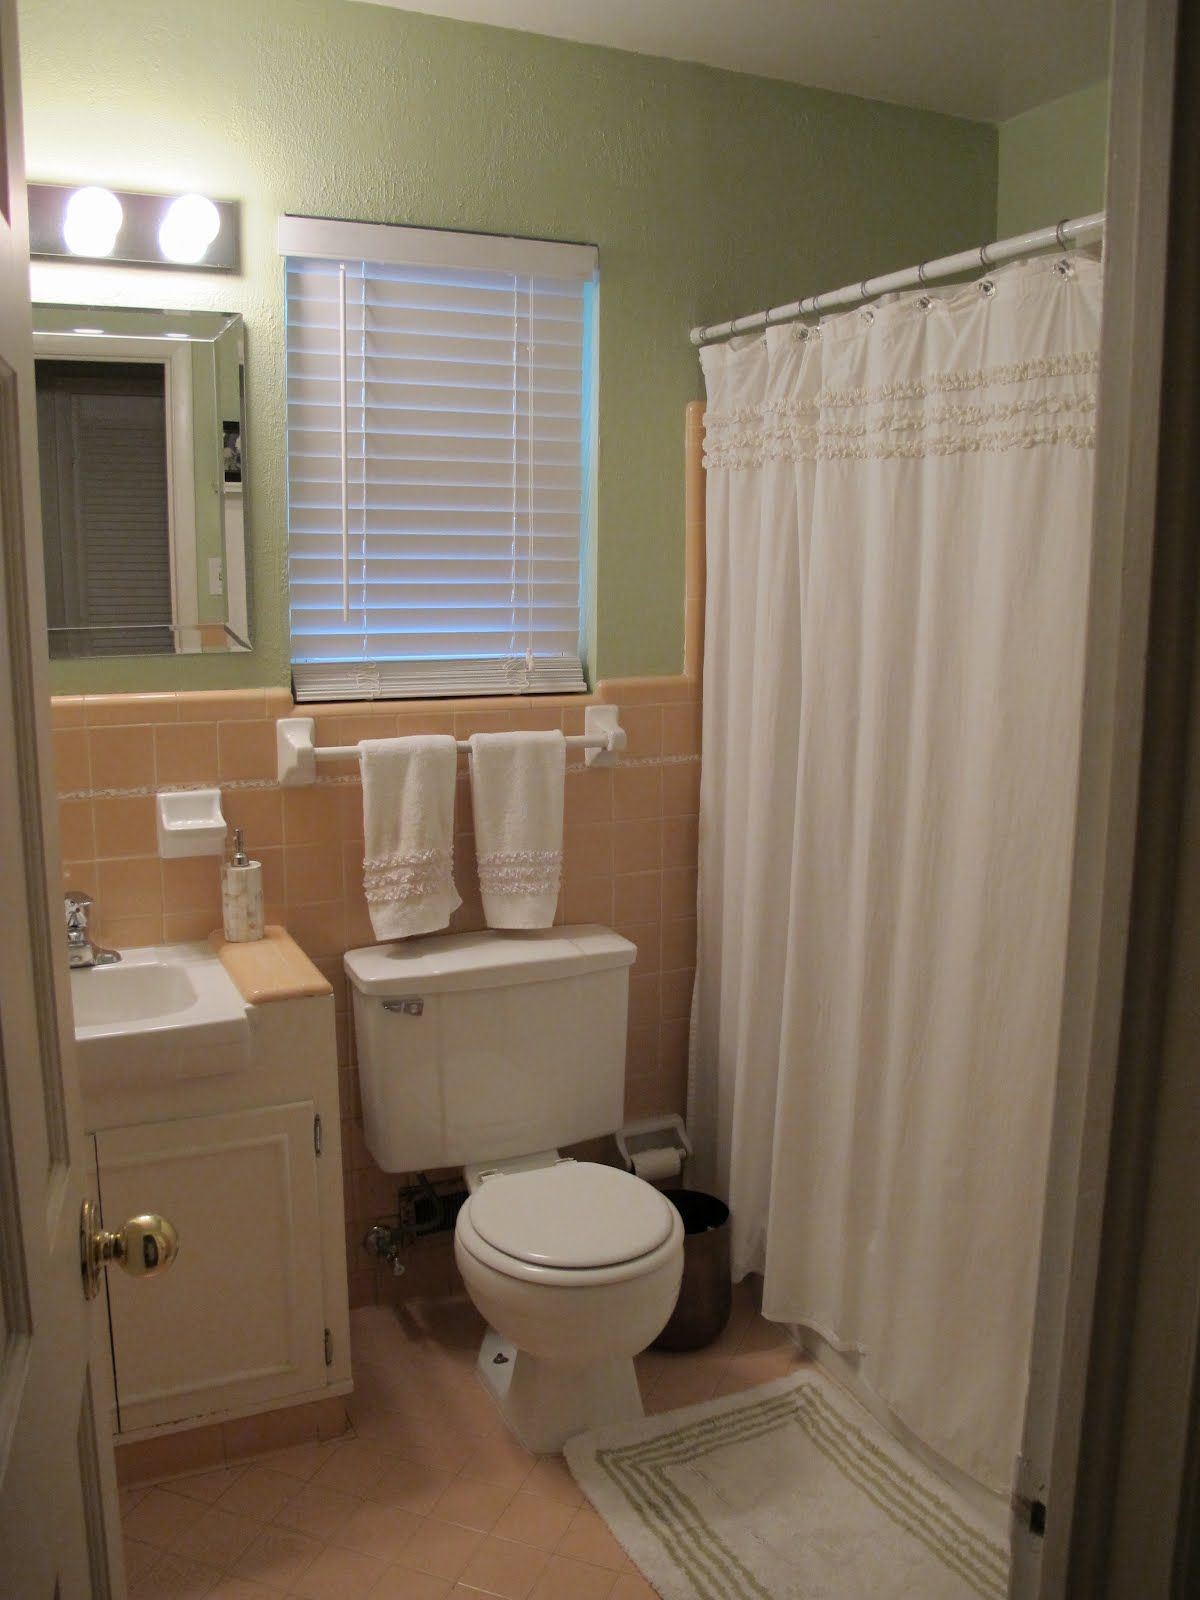 Remodel Bathroom Help help, peach/brown bathroom tile - home decorating & design forum